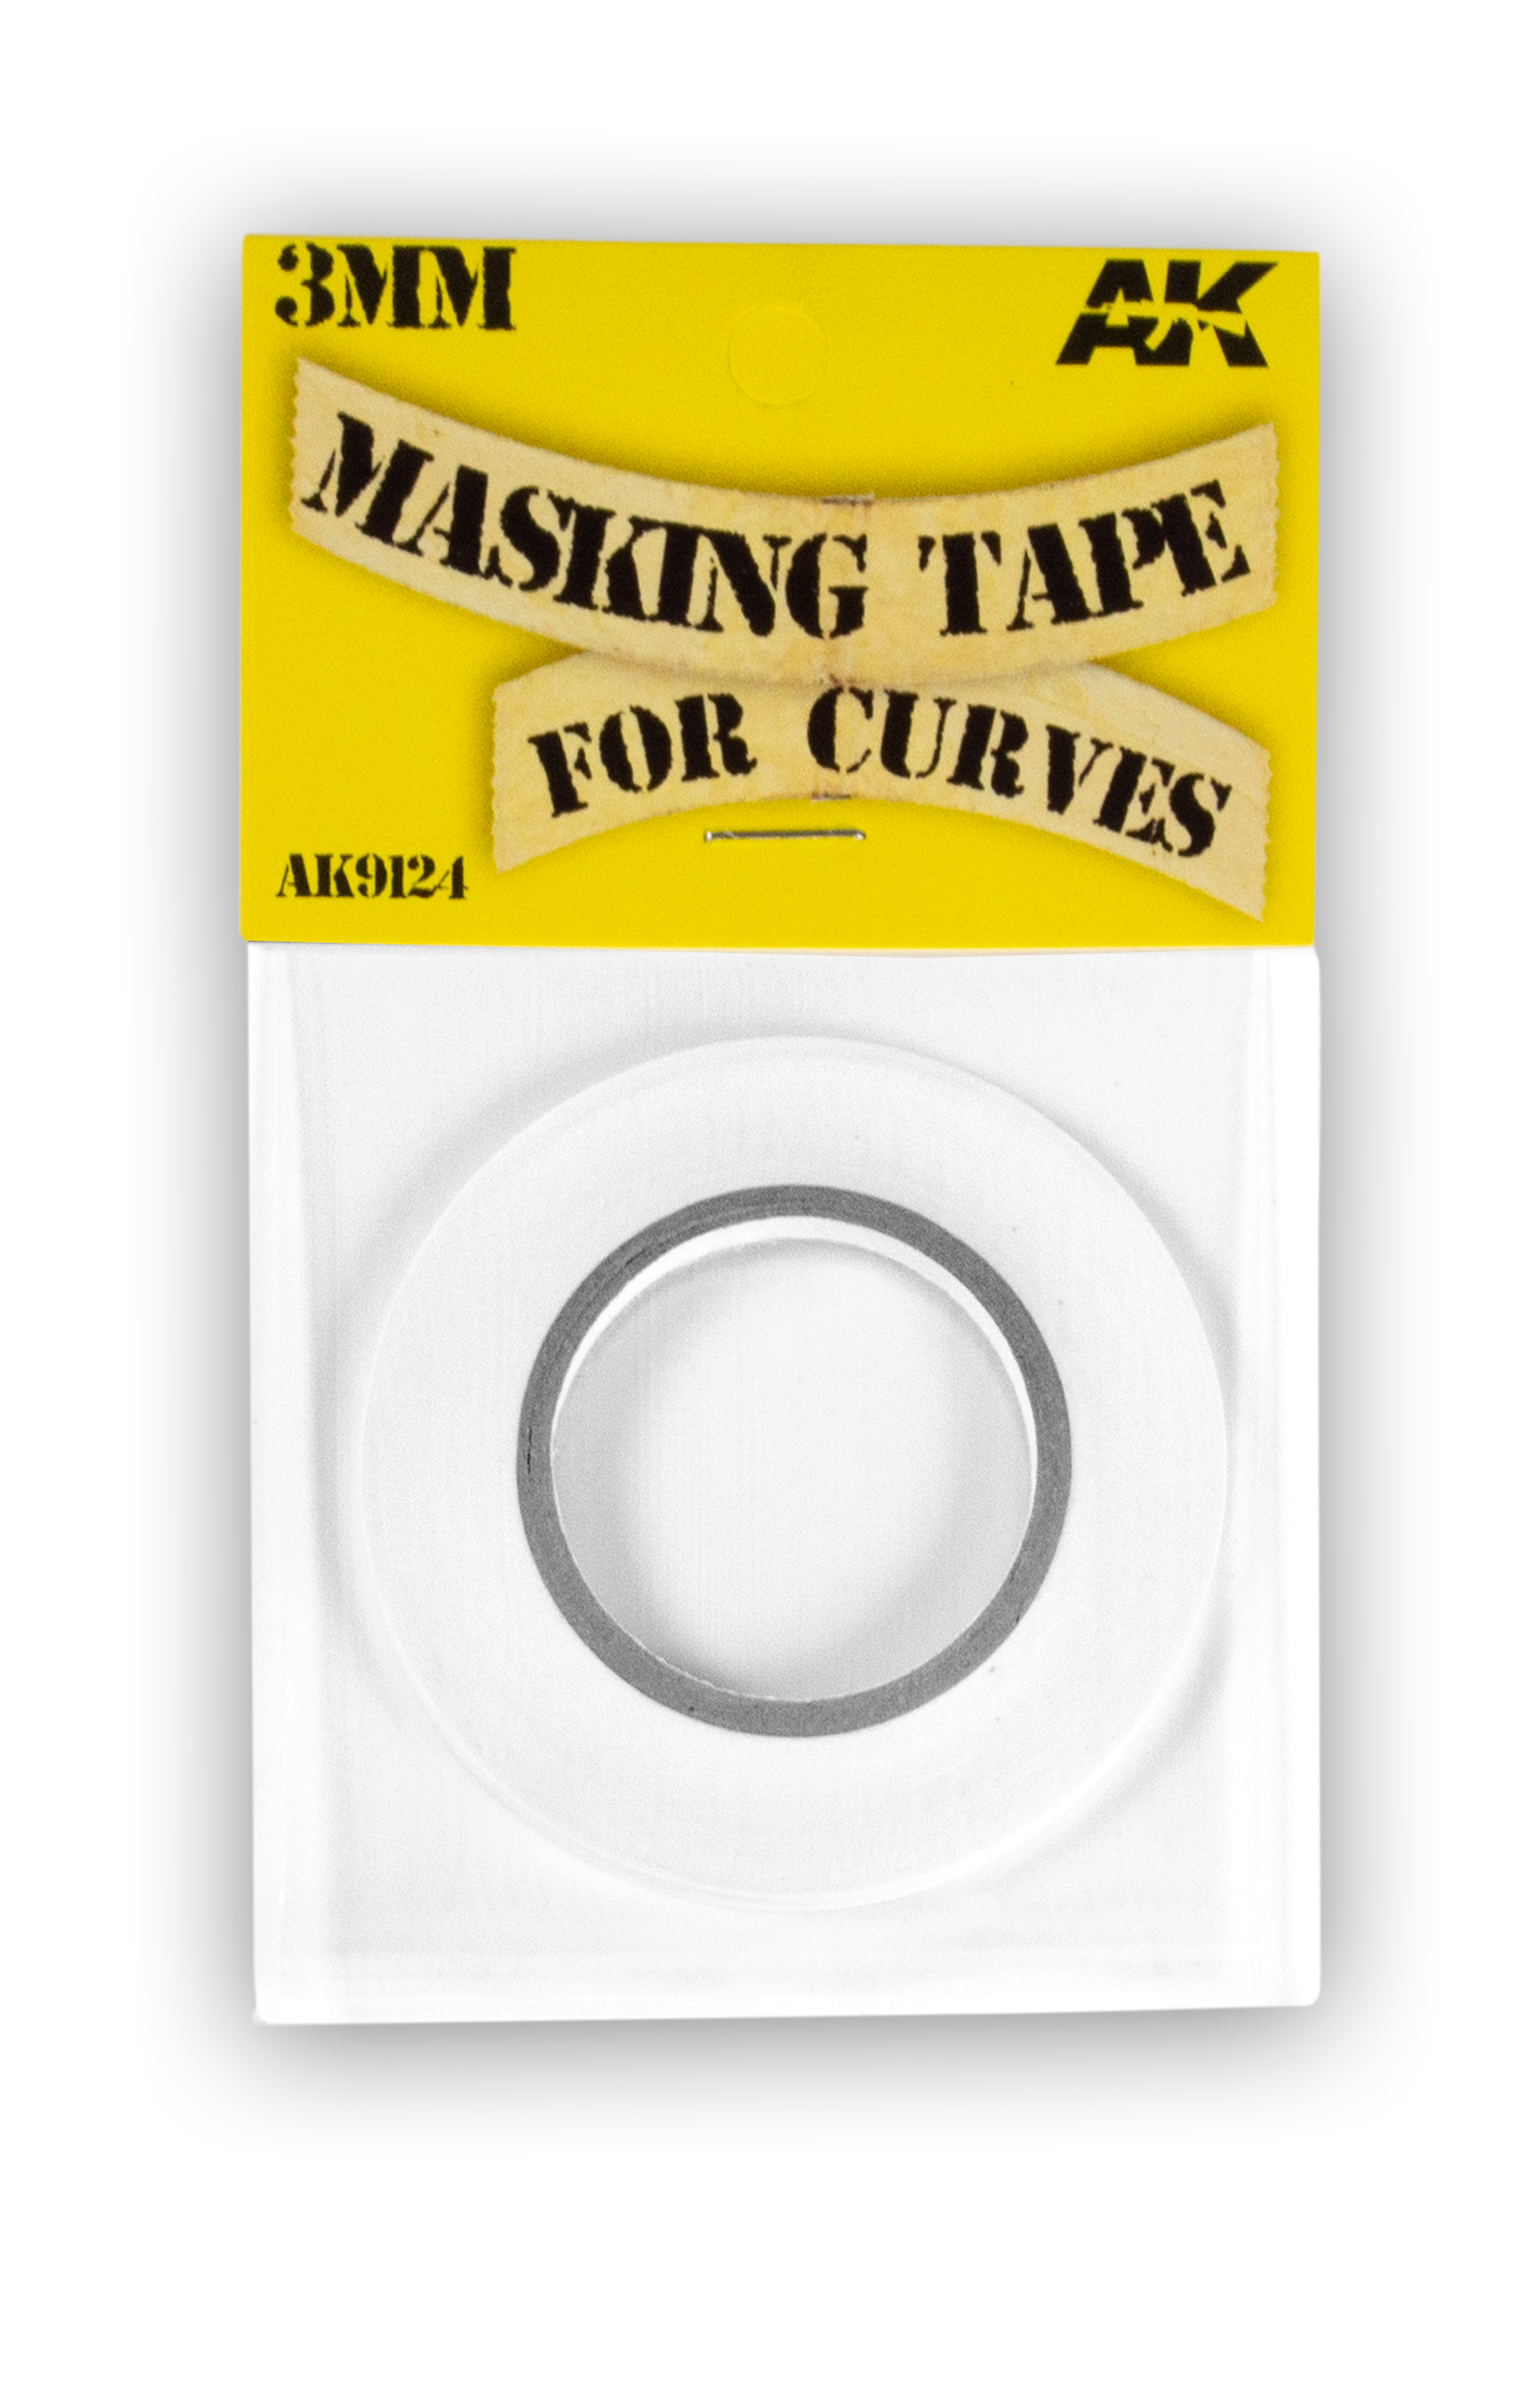 AK Interactive Masking Tape for Curves 3mm